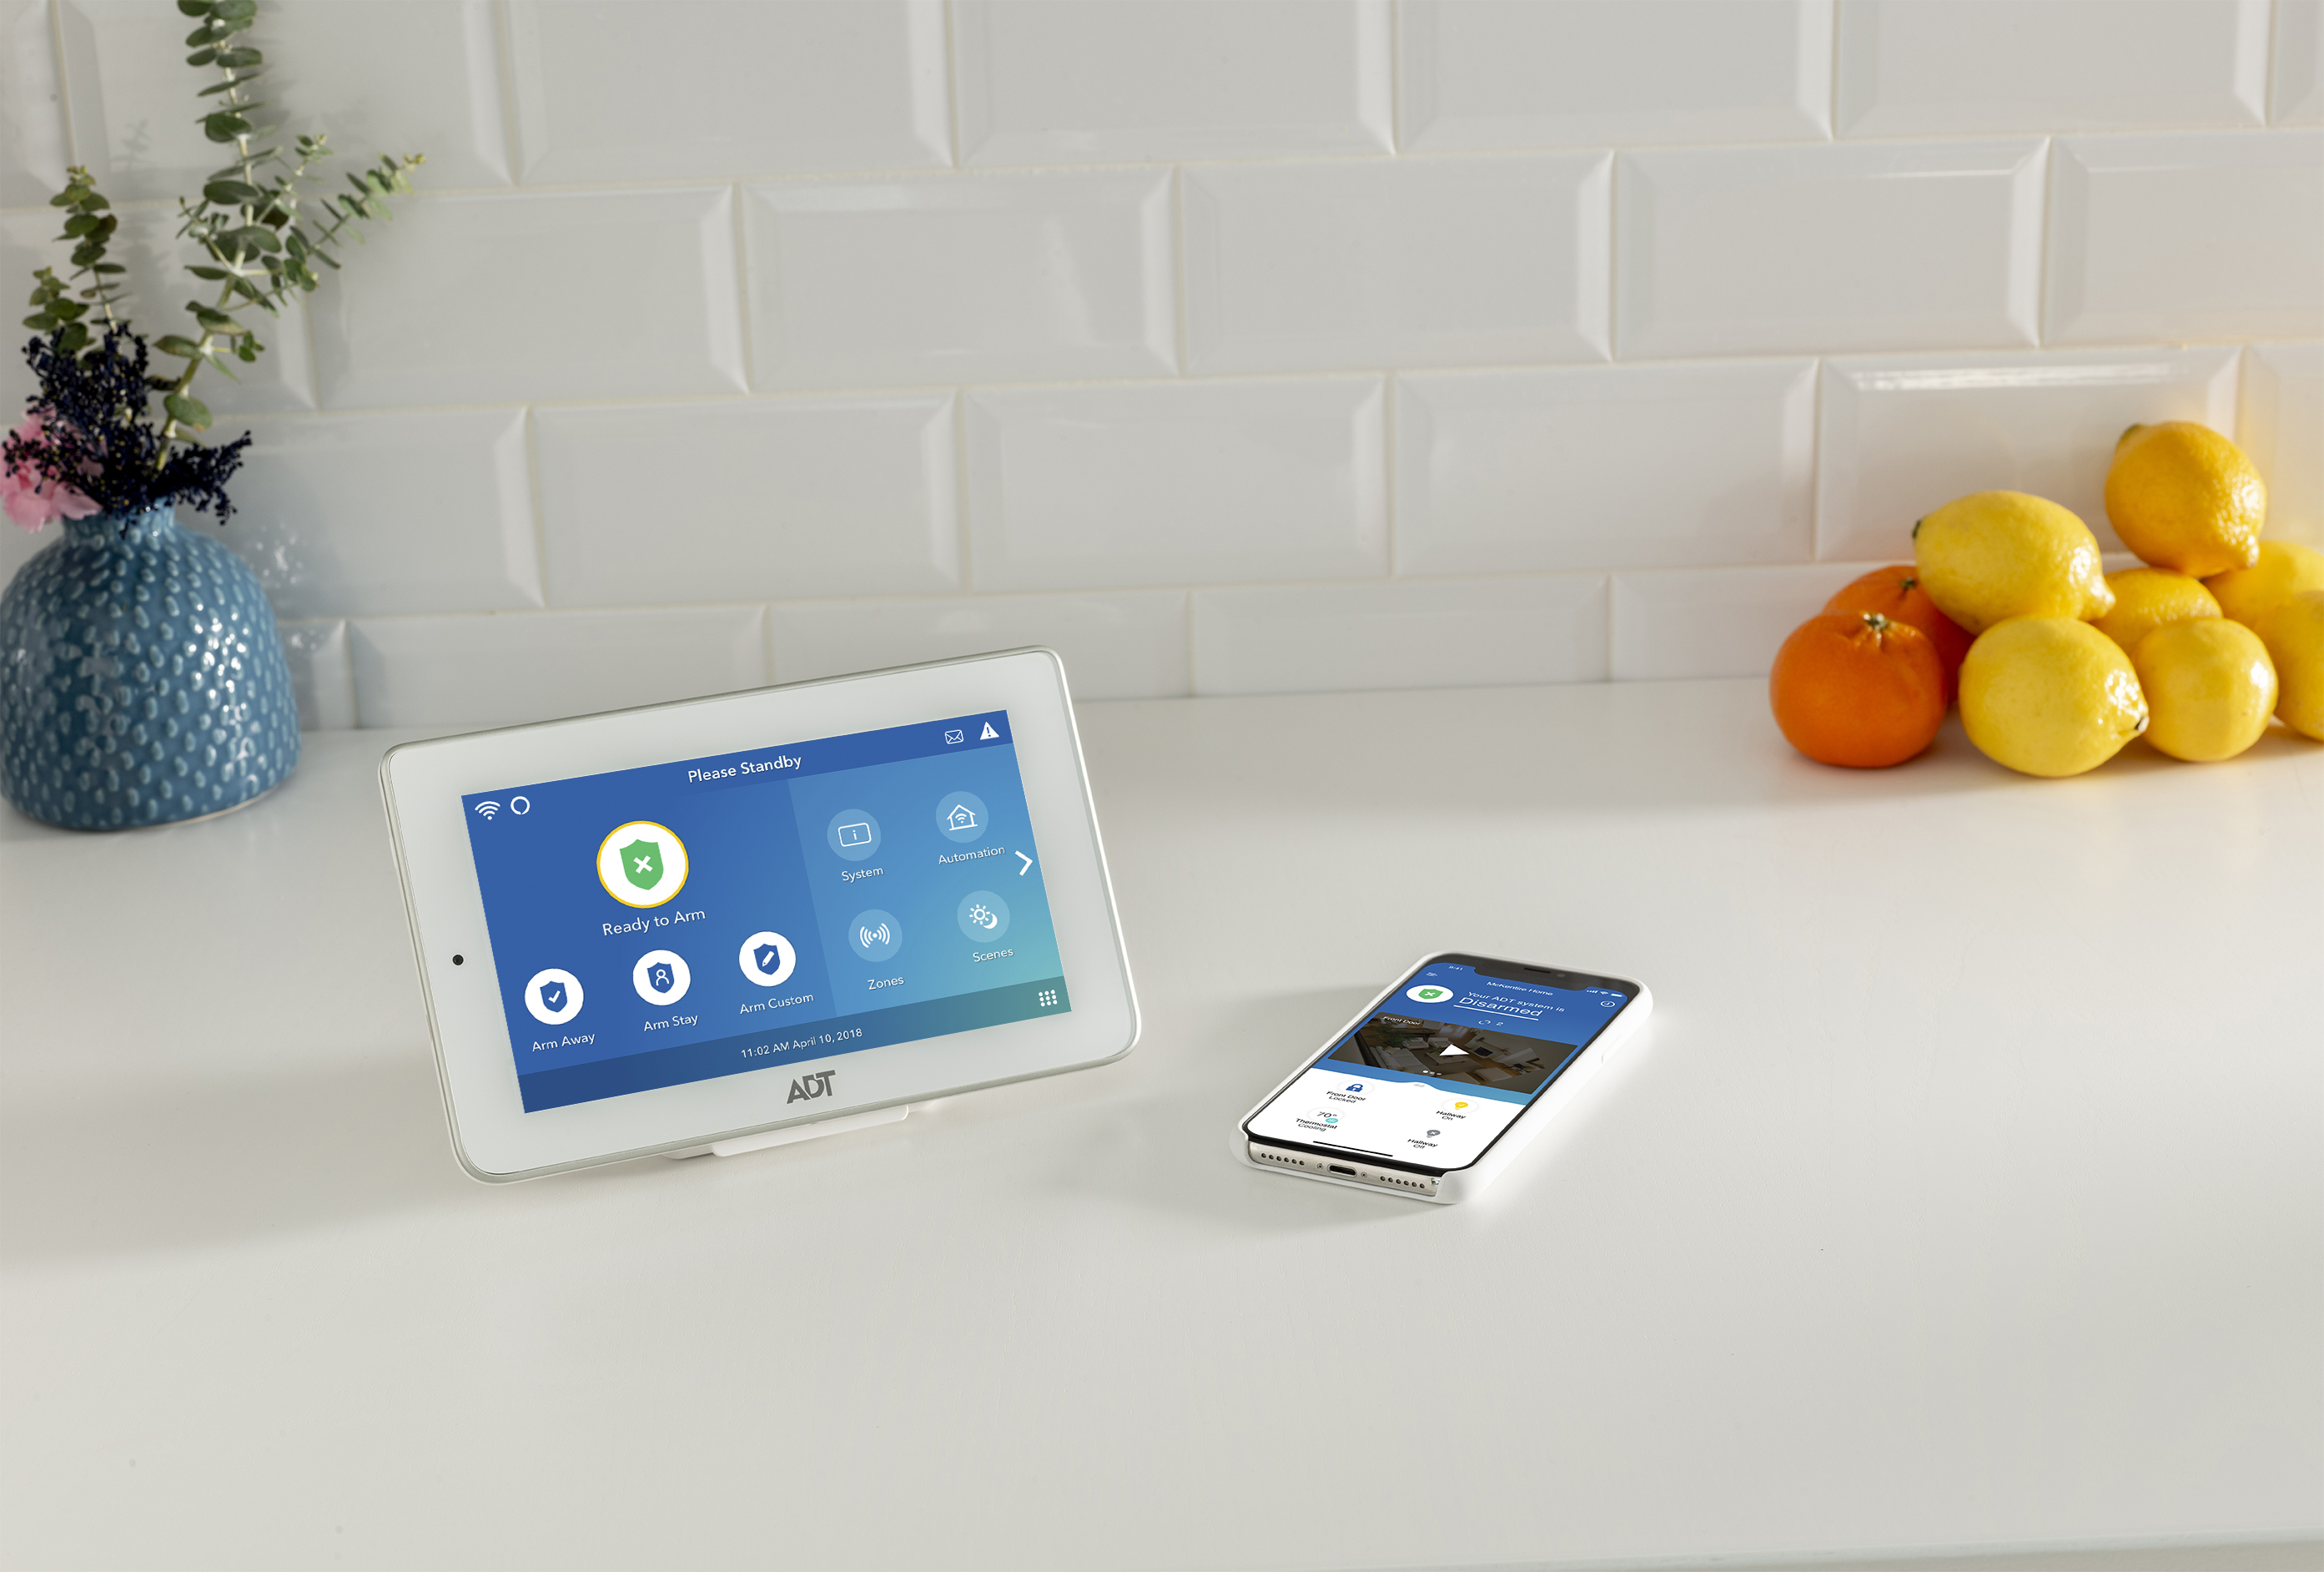 A tablet and phone sit on a kitchen counter, and both devices have the ADT Security app on display.